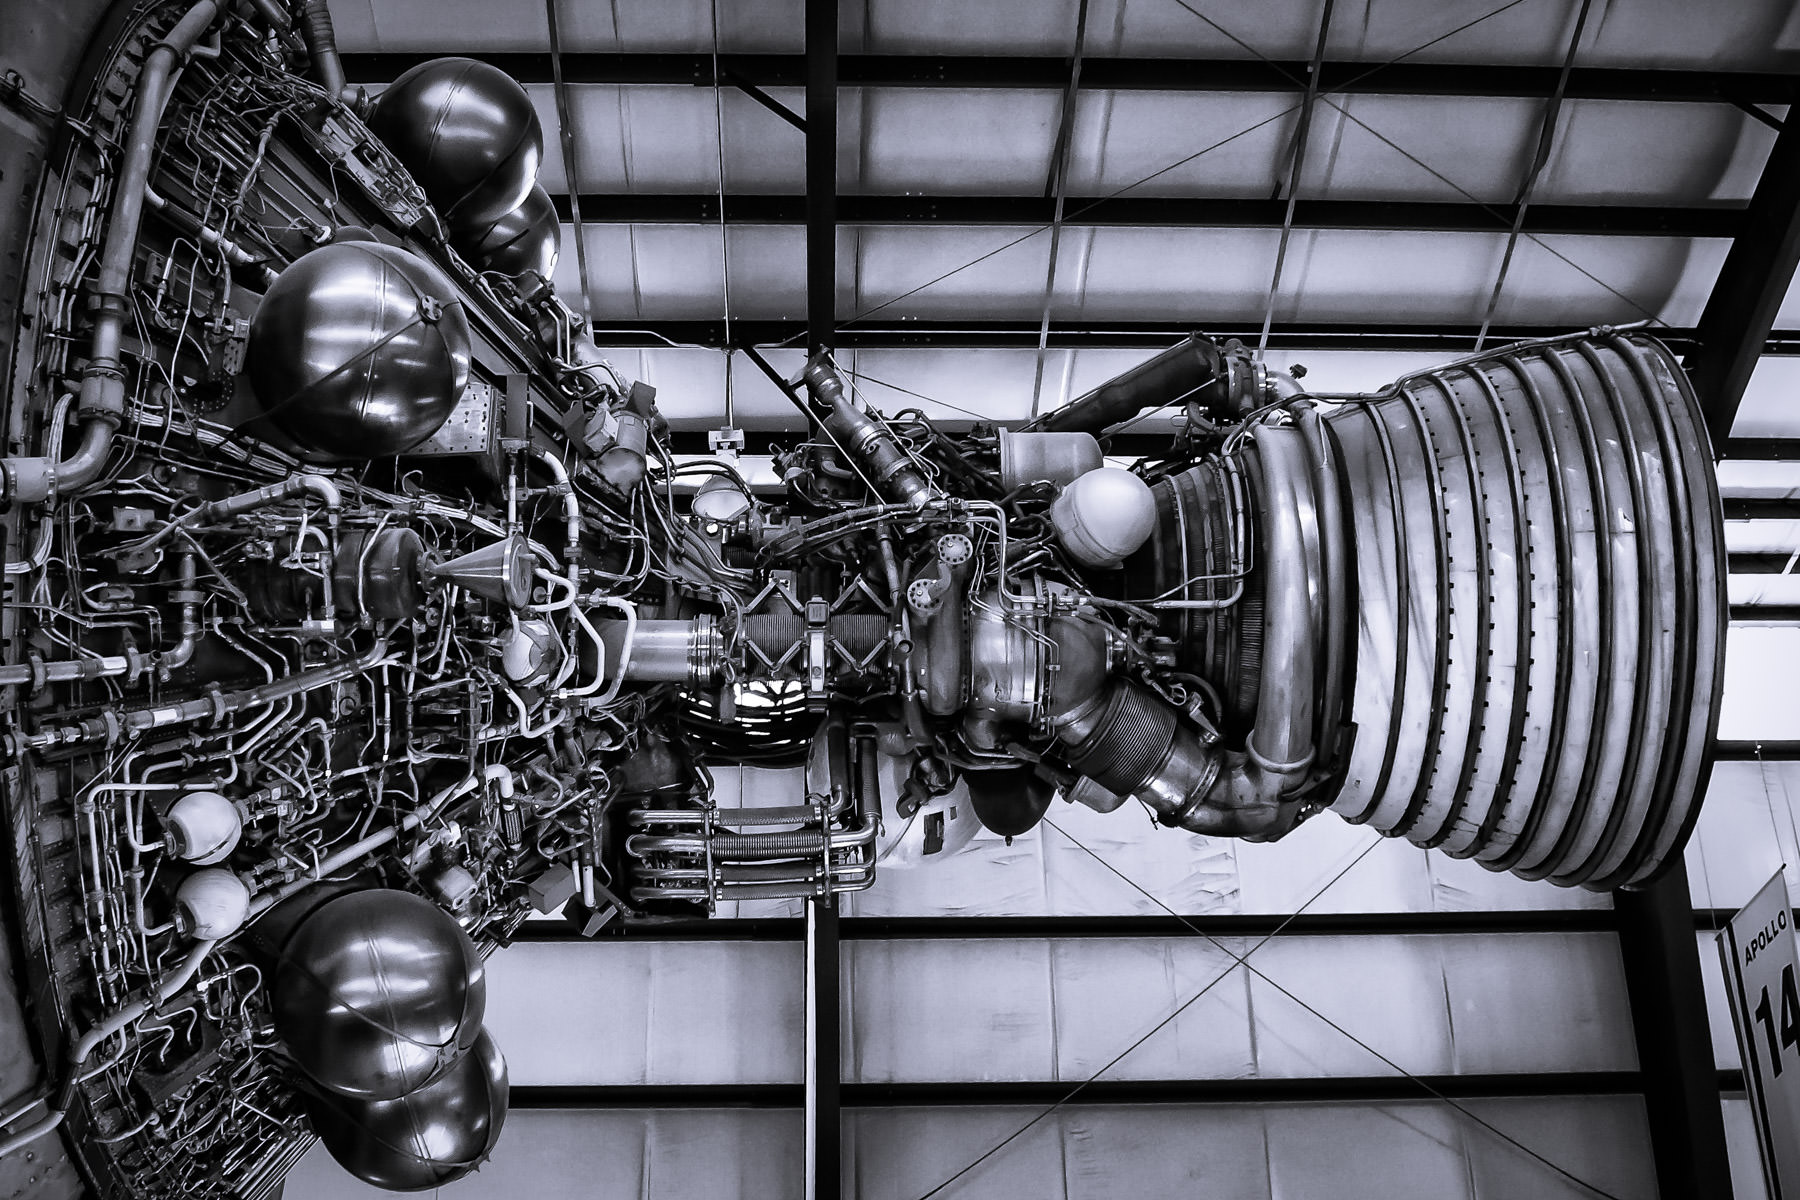 An engine from an intermediary stage of a Apollo program Saturn V rocket on display at NASA's Johnson Space Center, Houston, Texas.